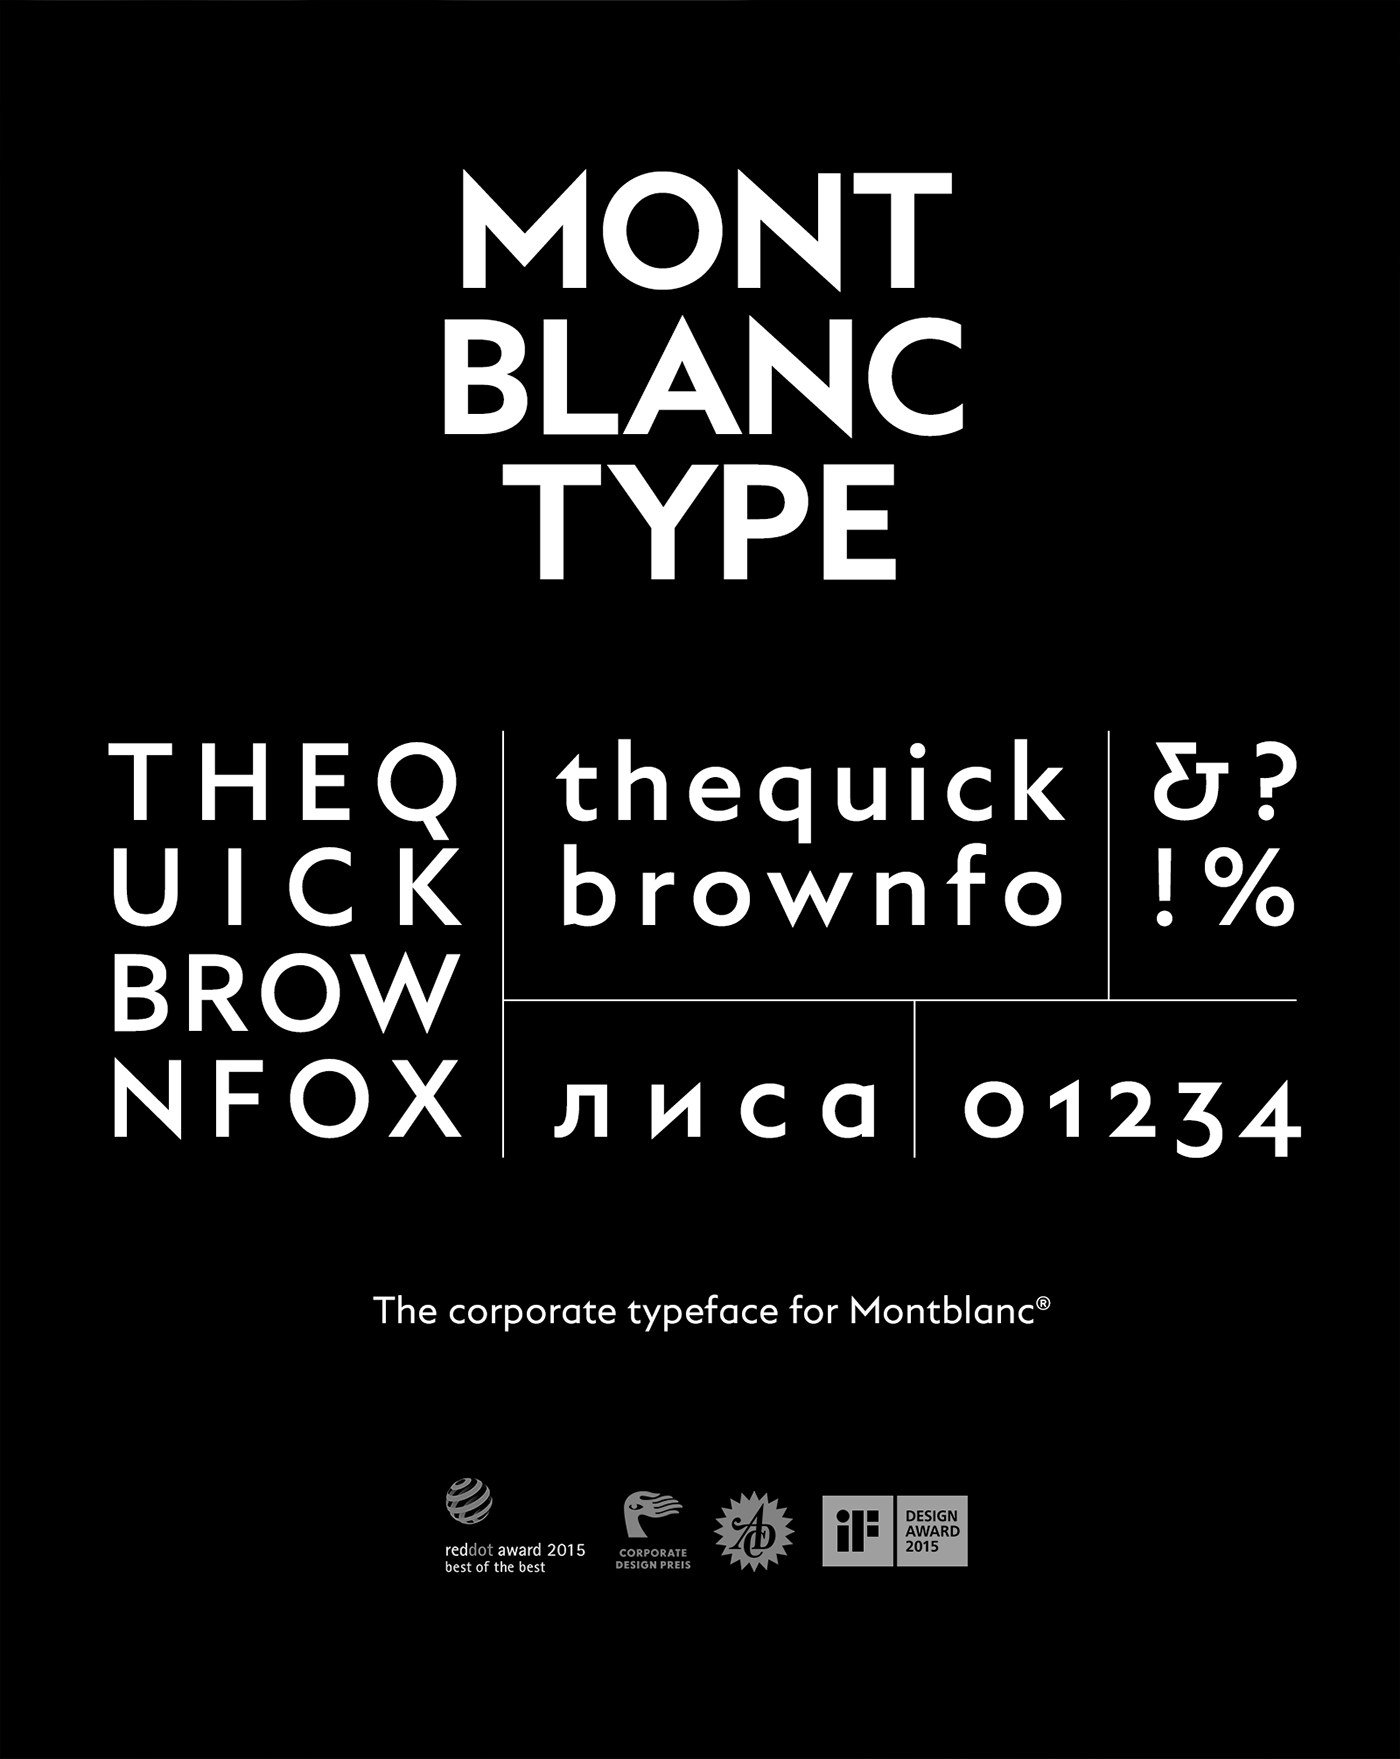 Montblanc Type is the corporate typeface for Montblanc  A